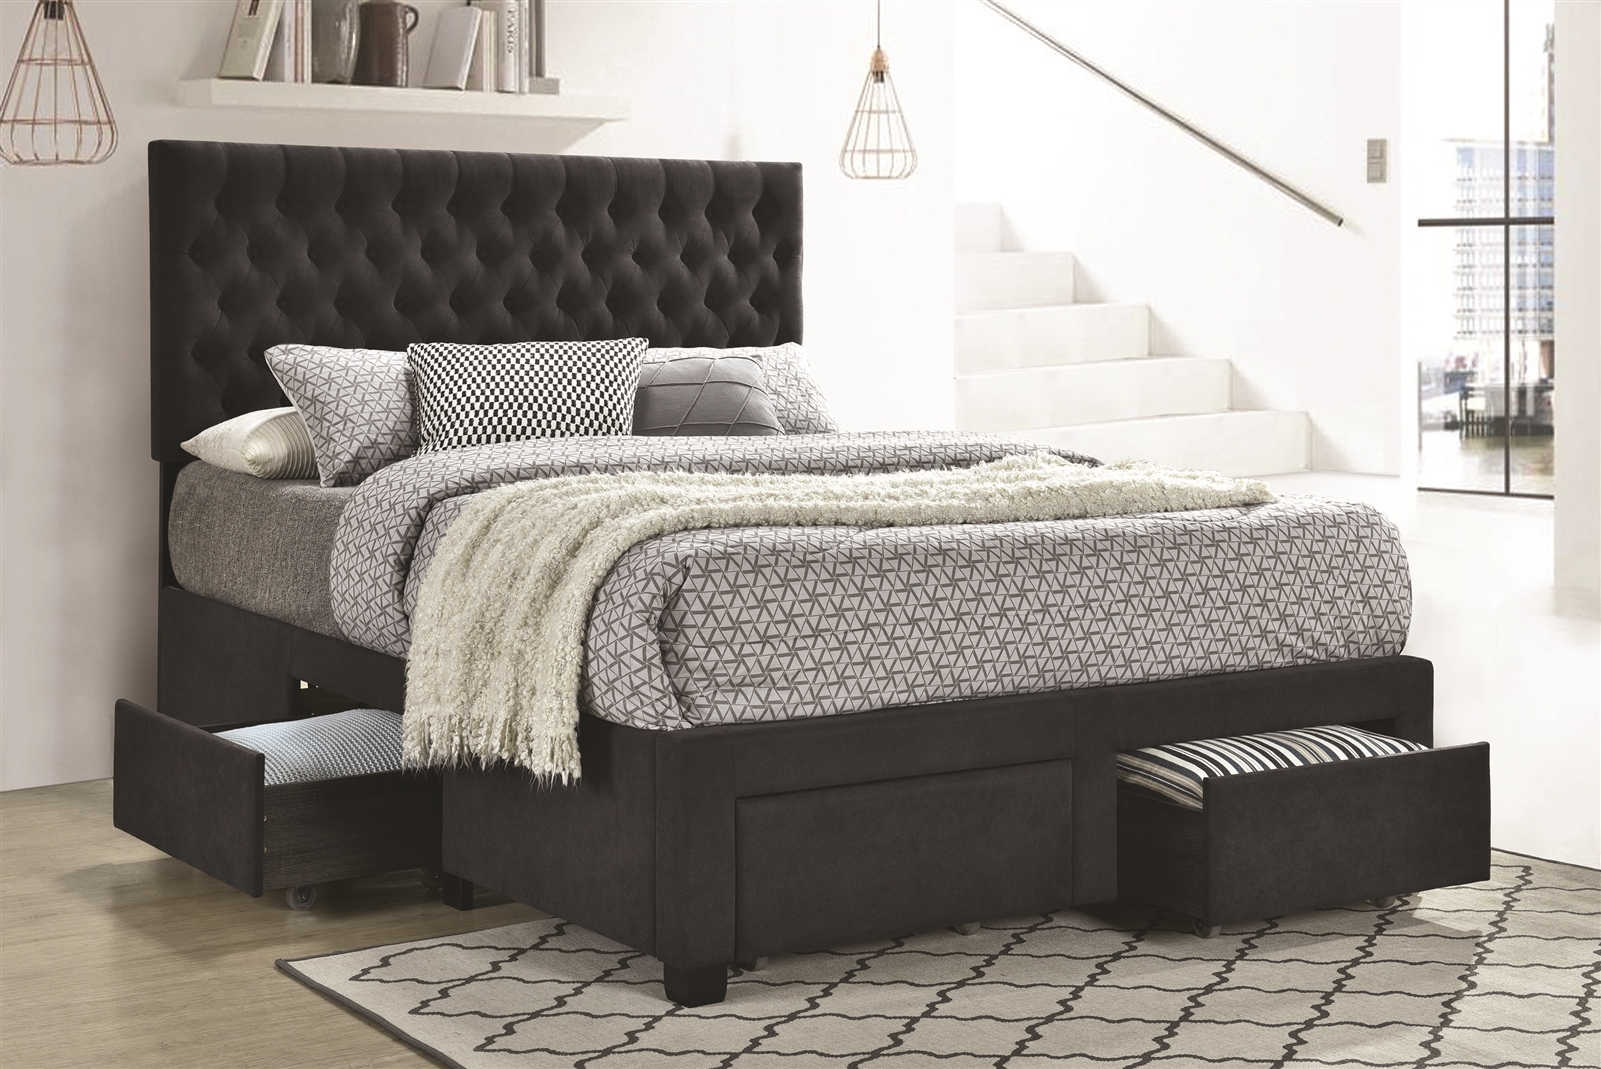 Lompoc Tufted Grey Linen Upholstered Platform Storage Bed